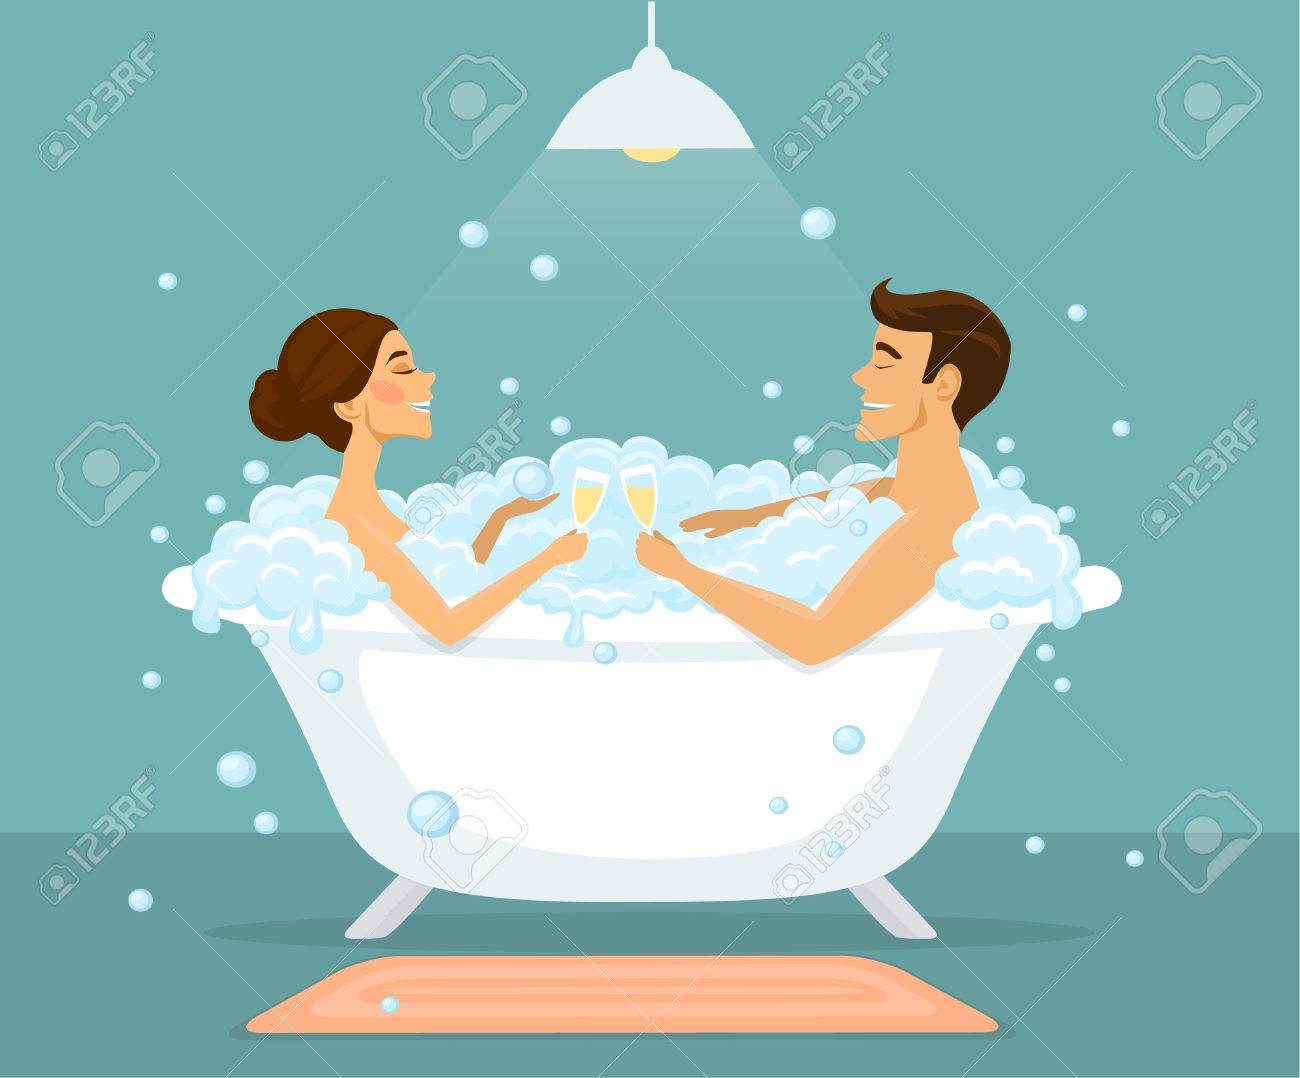 Couple, Man And Woman Taking Bath In A Vintage Bathtub With Bubbles ...